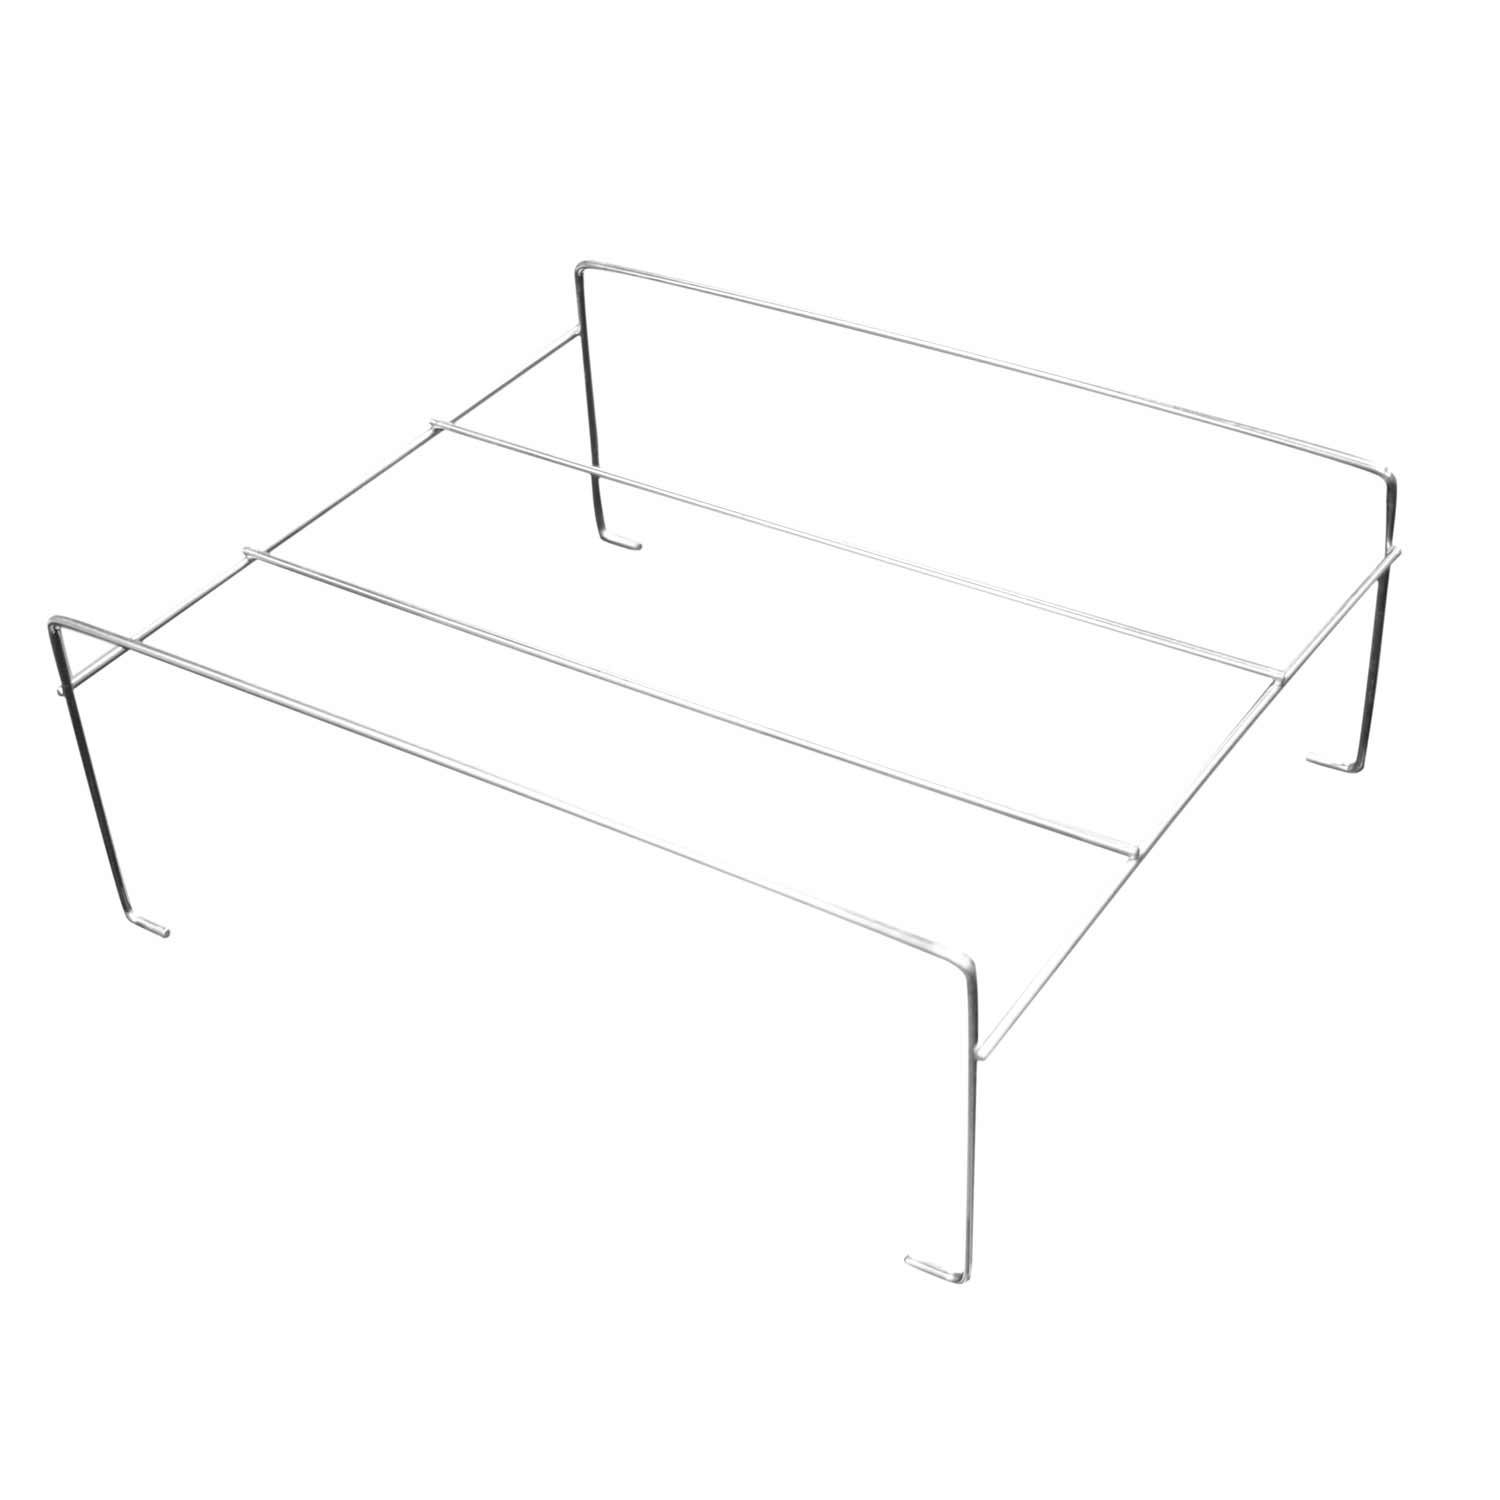 Party Essentials Economy Square Chafing Rack with Supports, Wire Buffet Rack Stand, Serving Trays Frame Food Warmer, Chrome (Case of 48)